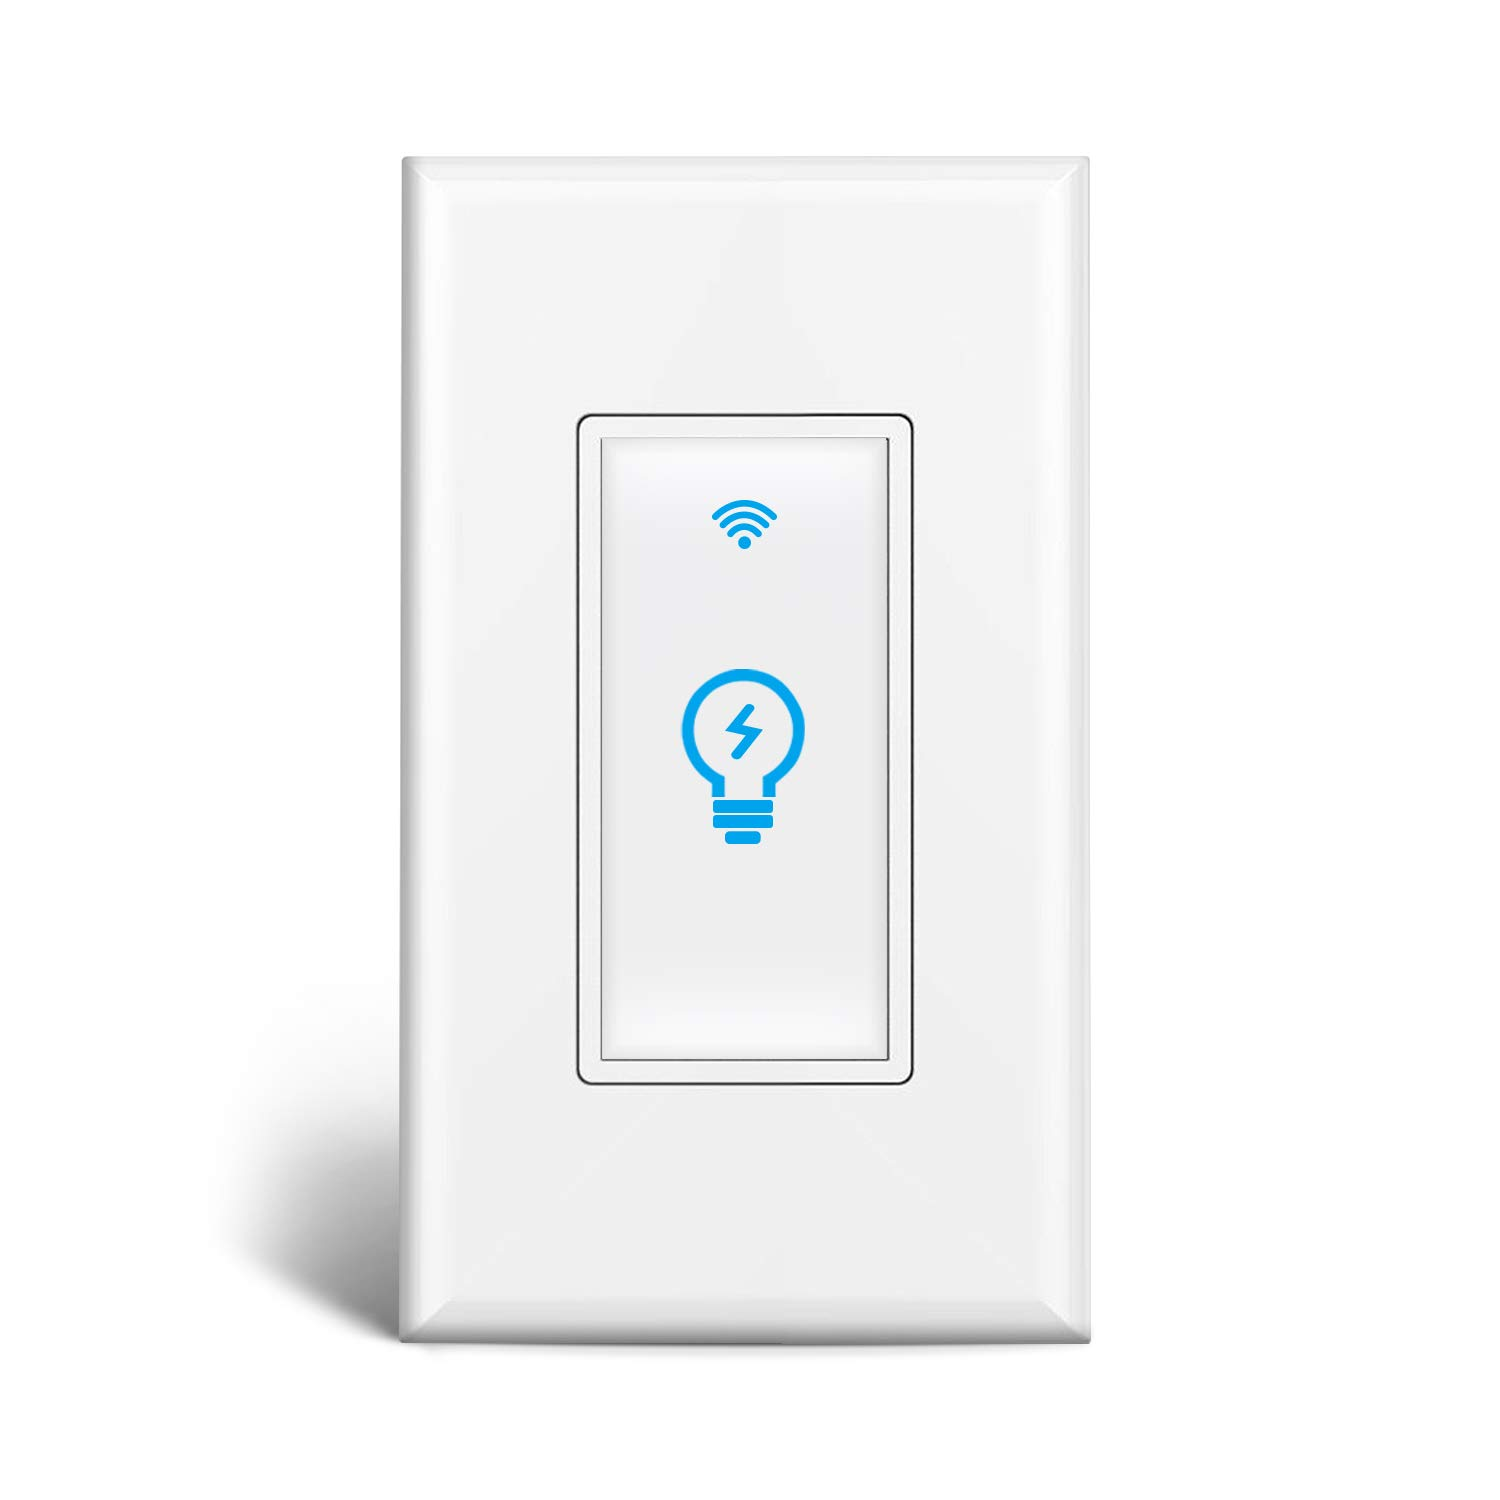 Smart Switch Homeyard Light In Wall Phone Wifi Remote Which Wires Connect To What On The And It Makes Sense Me Control Wireless No Hub Required Compatible With Alexa Google Assistant 1